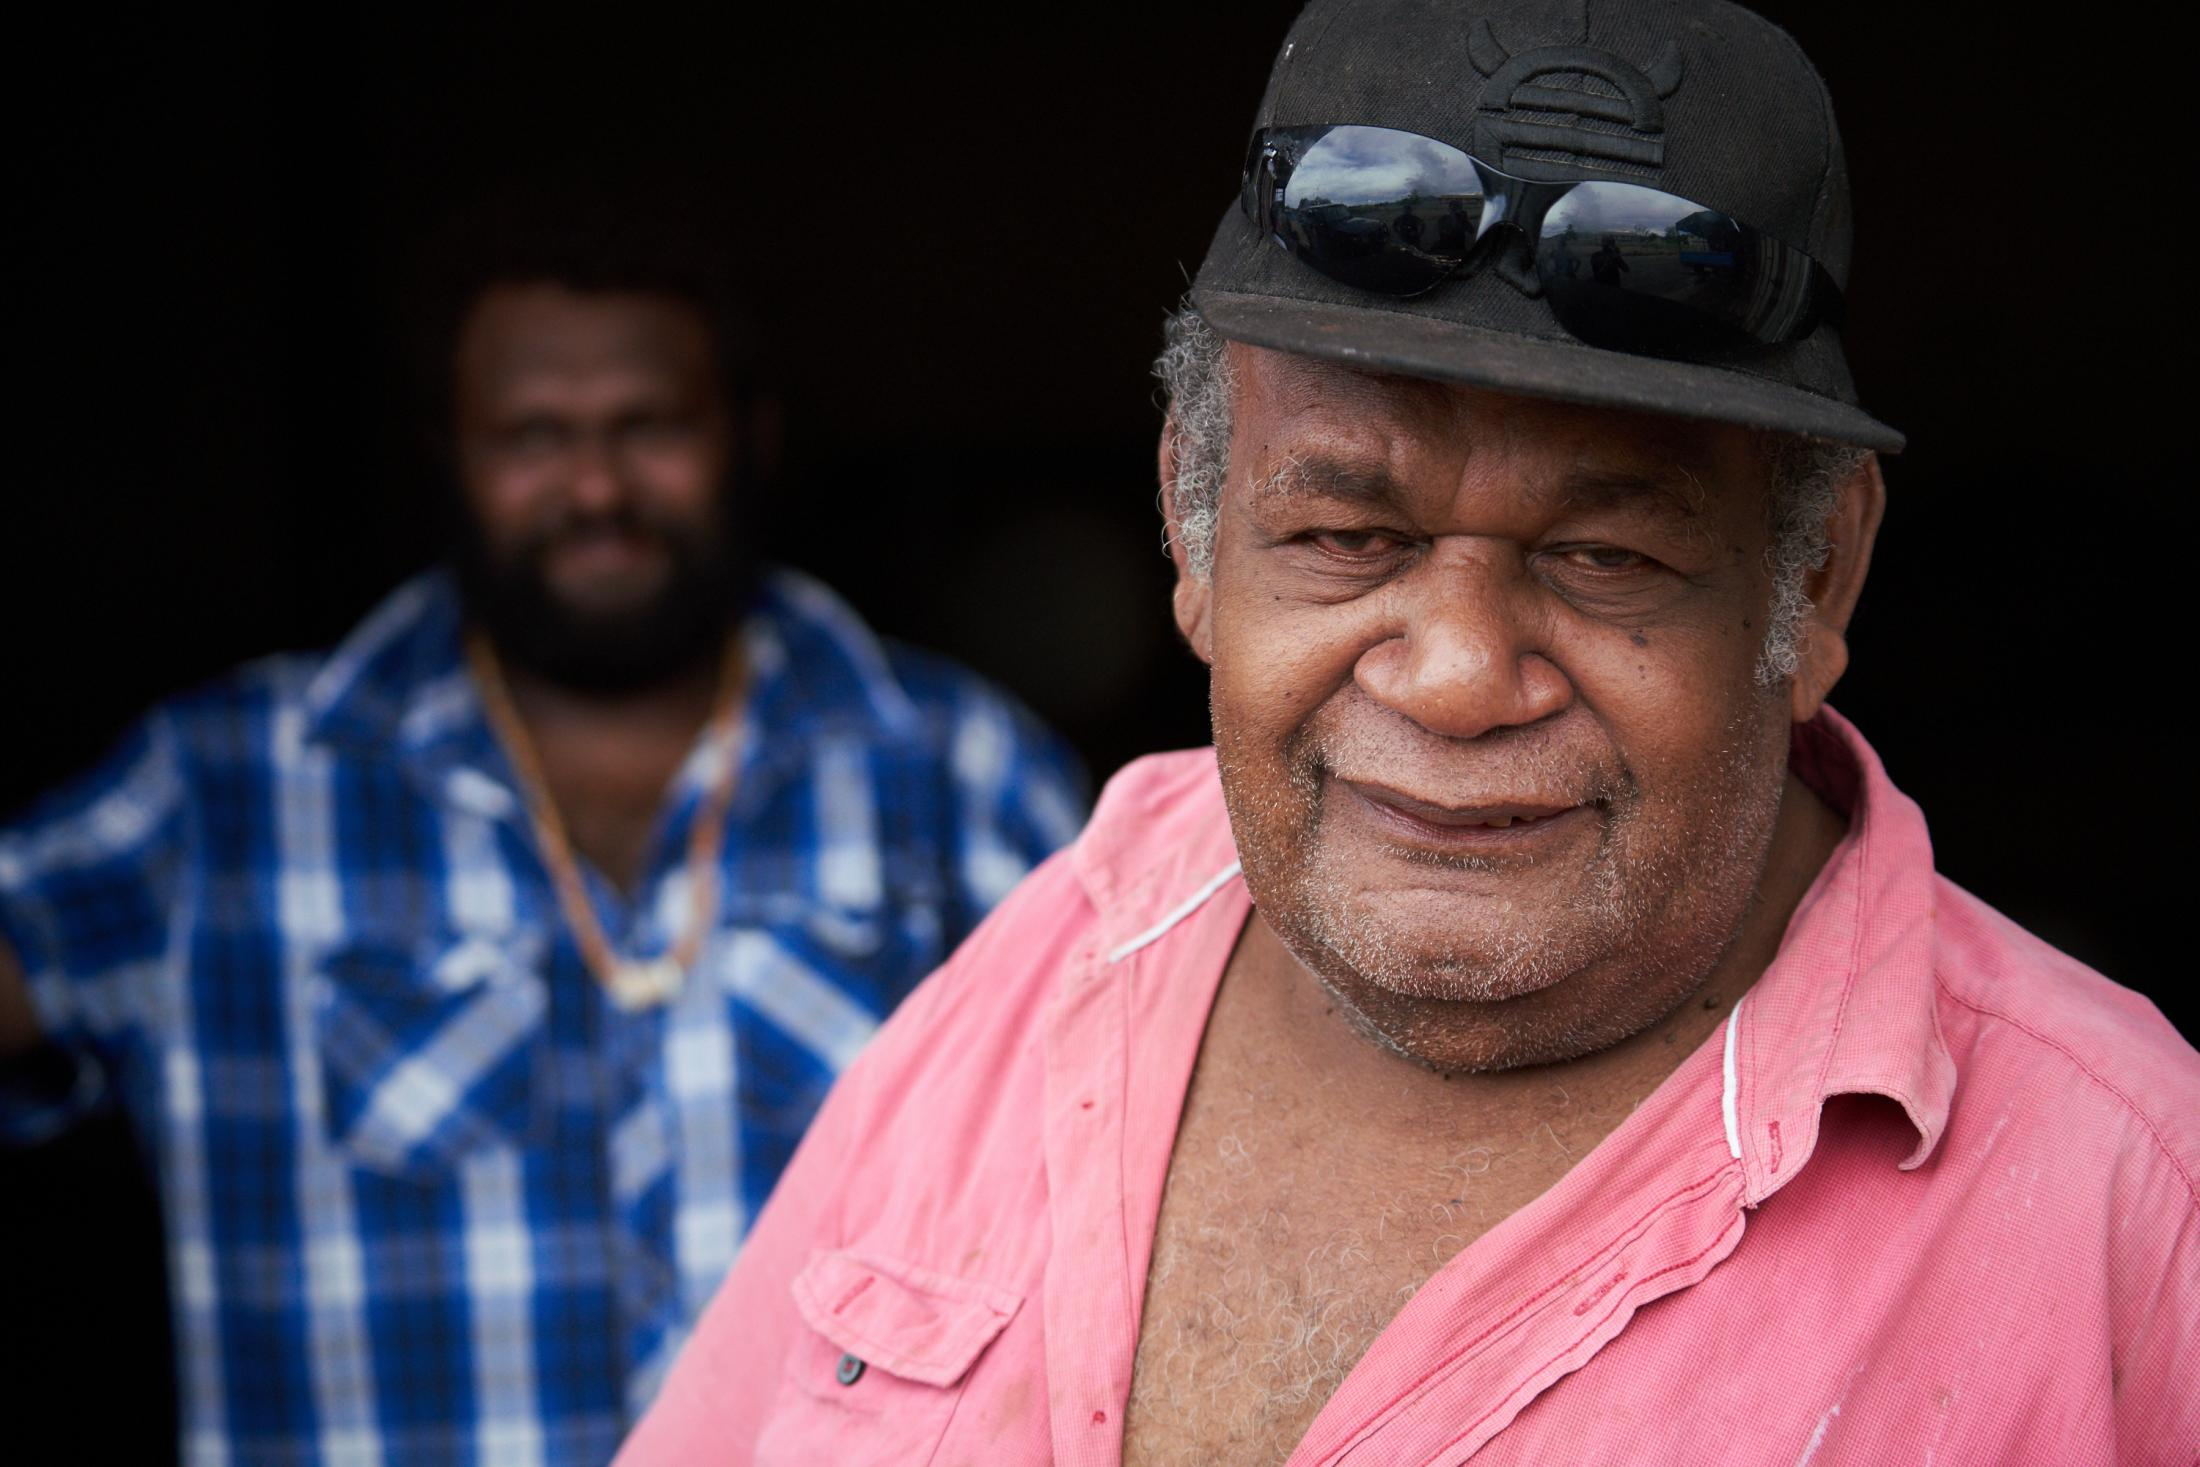 Brown Fono, cocoa bean trader and owner of Arania Enterprises (in business for 30 years). Arania Enterprises Coocoa Buyers and Exporters. Auki, Malaita Province, Solomon Islands.